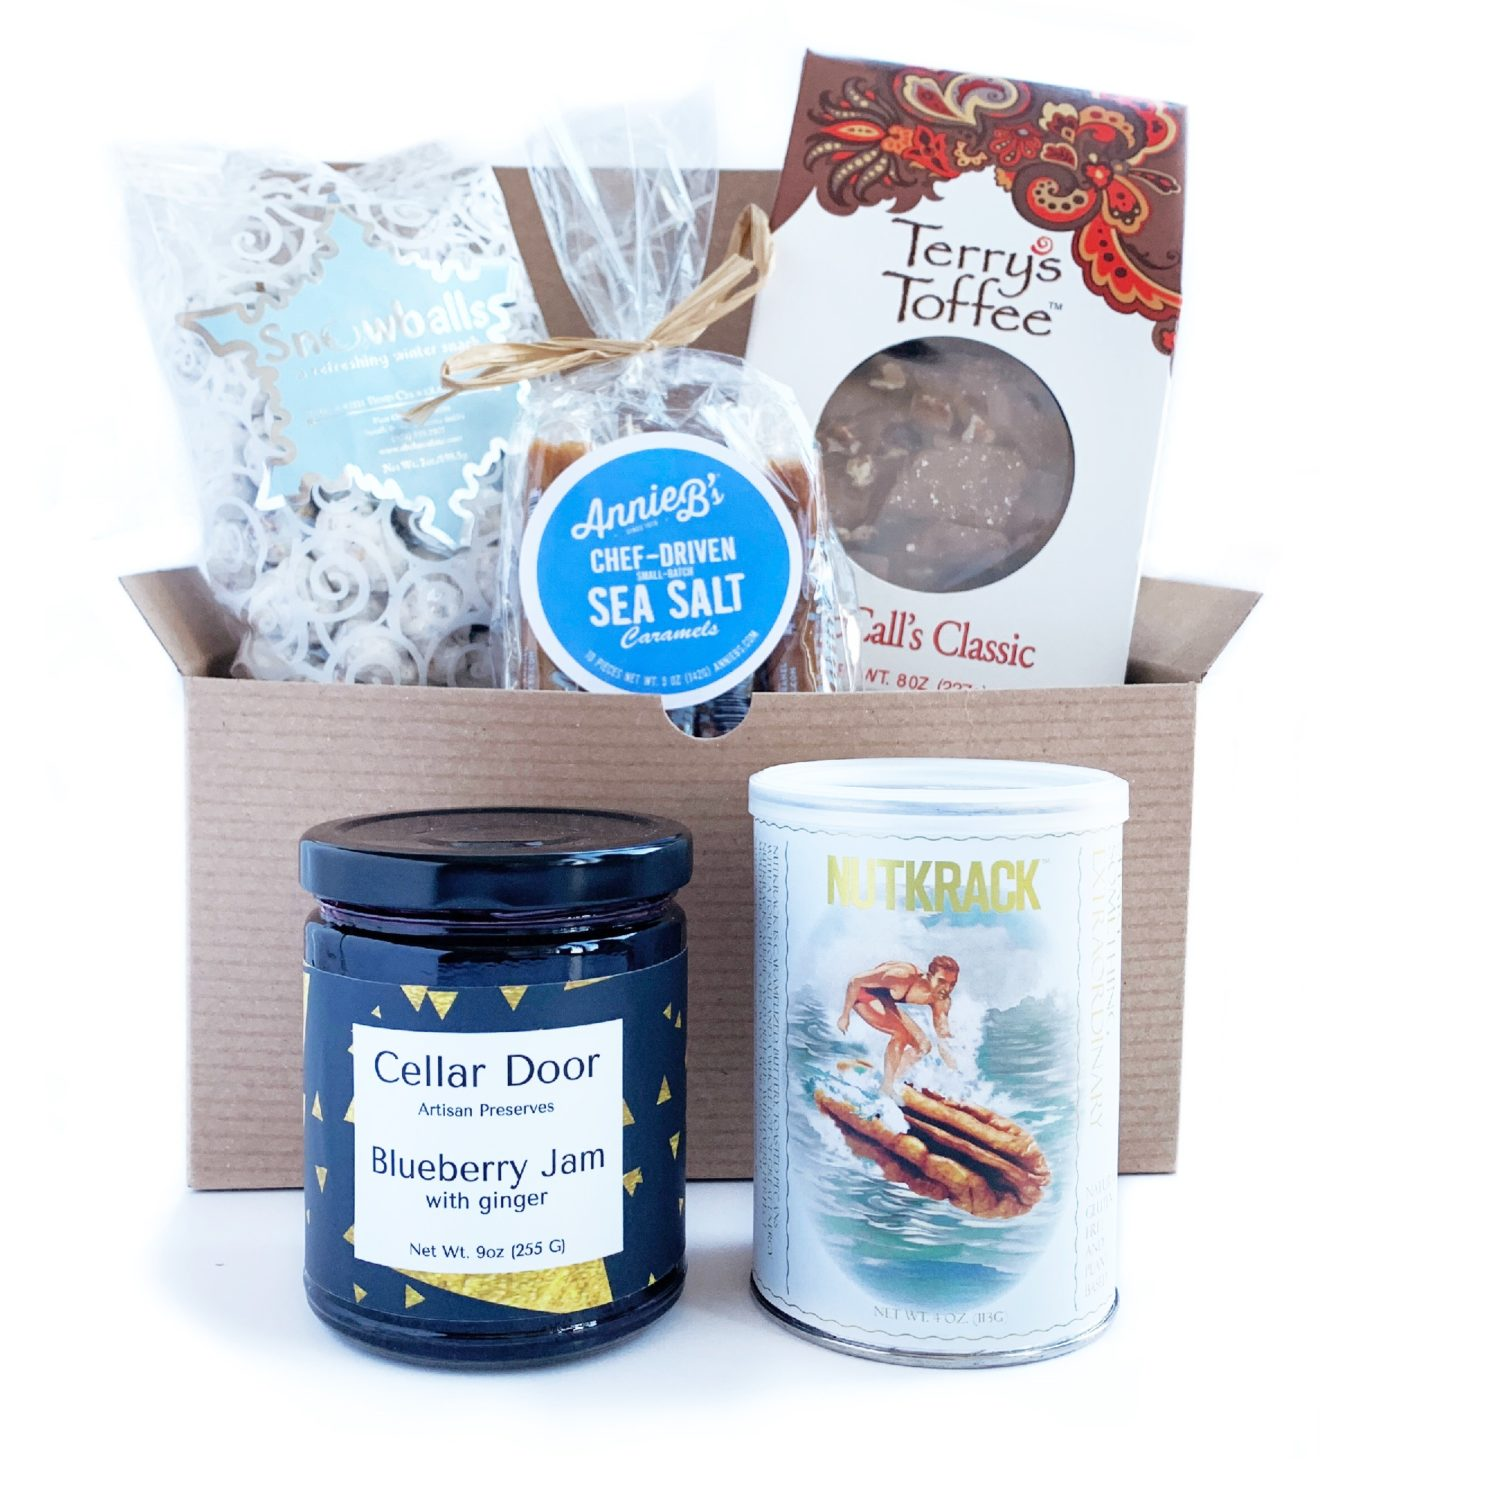 A midwest treats gift box from Neighborly